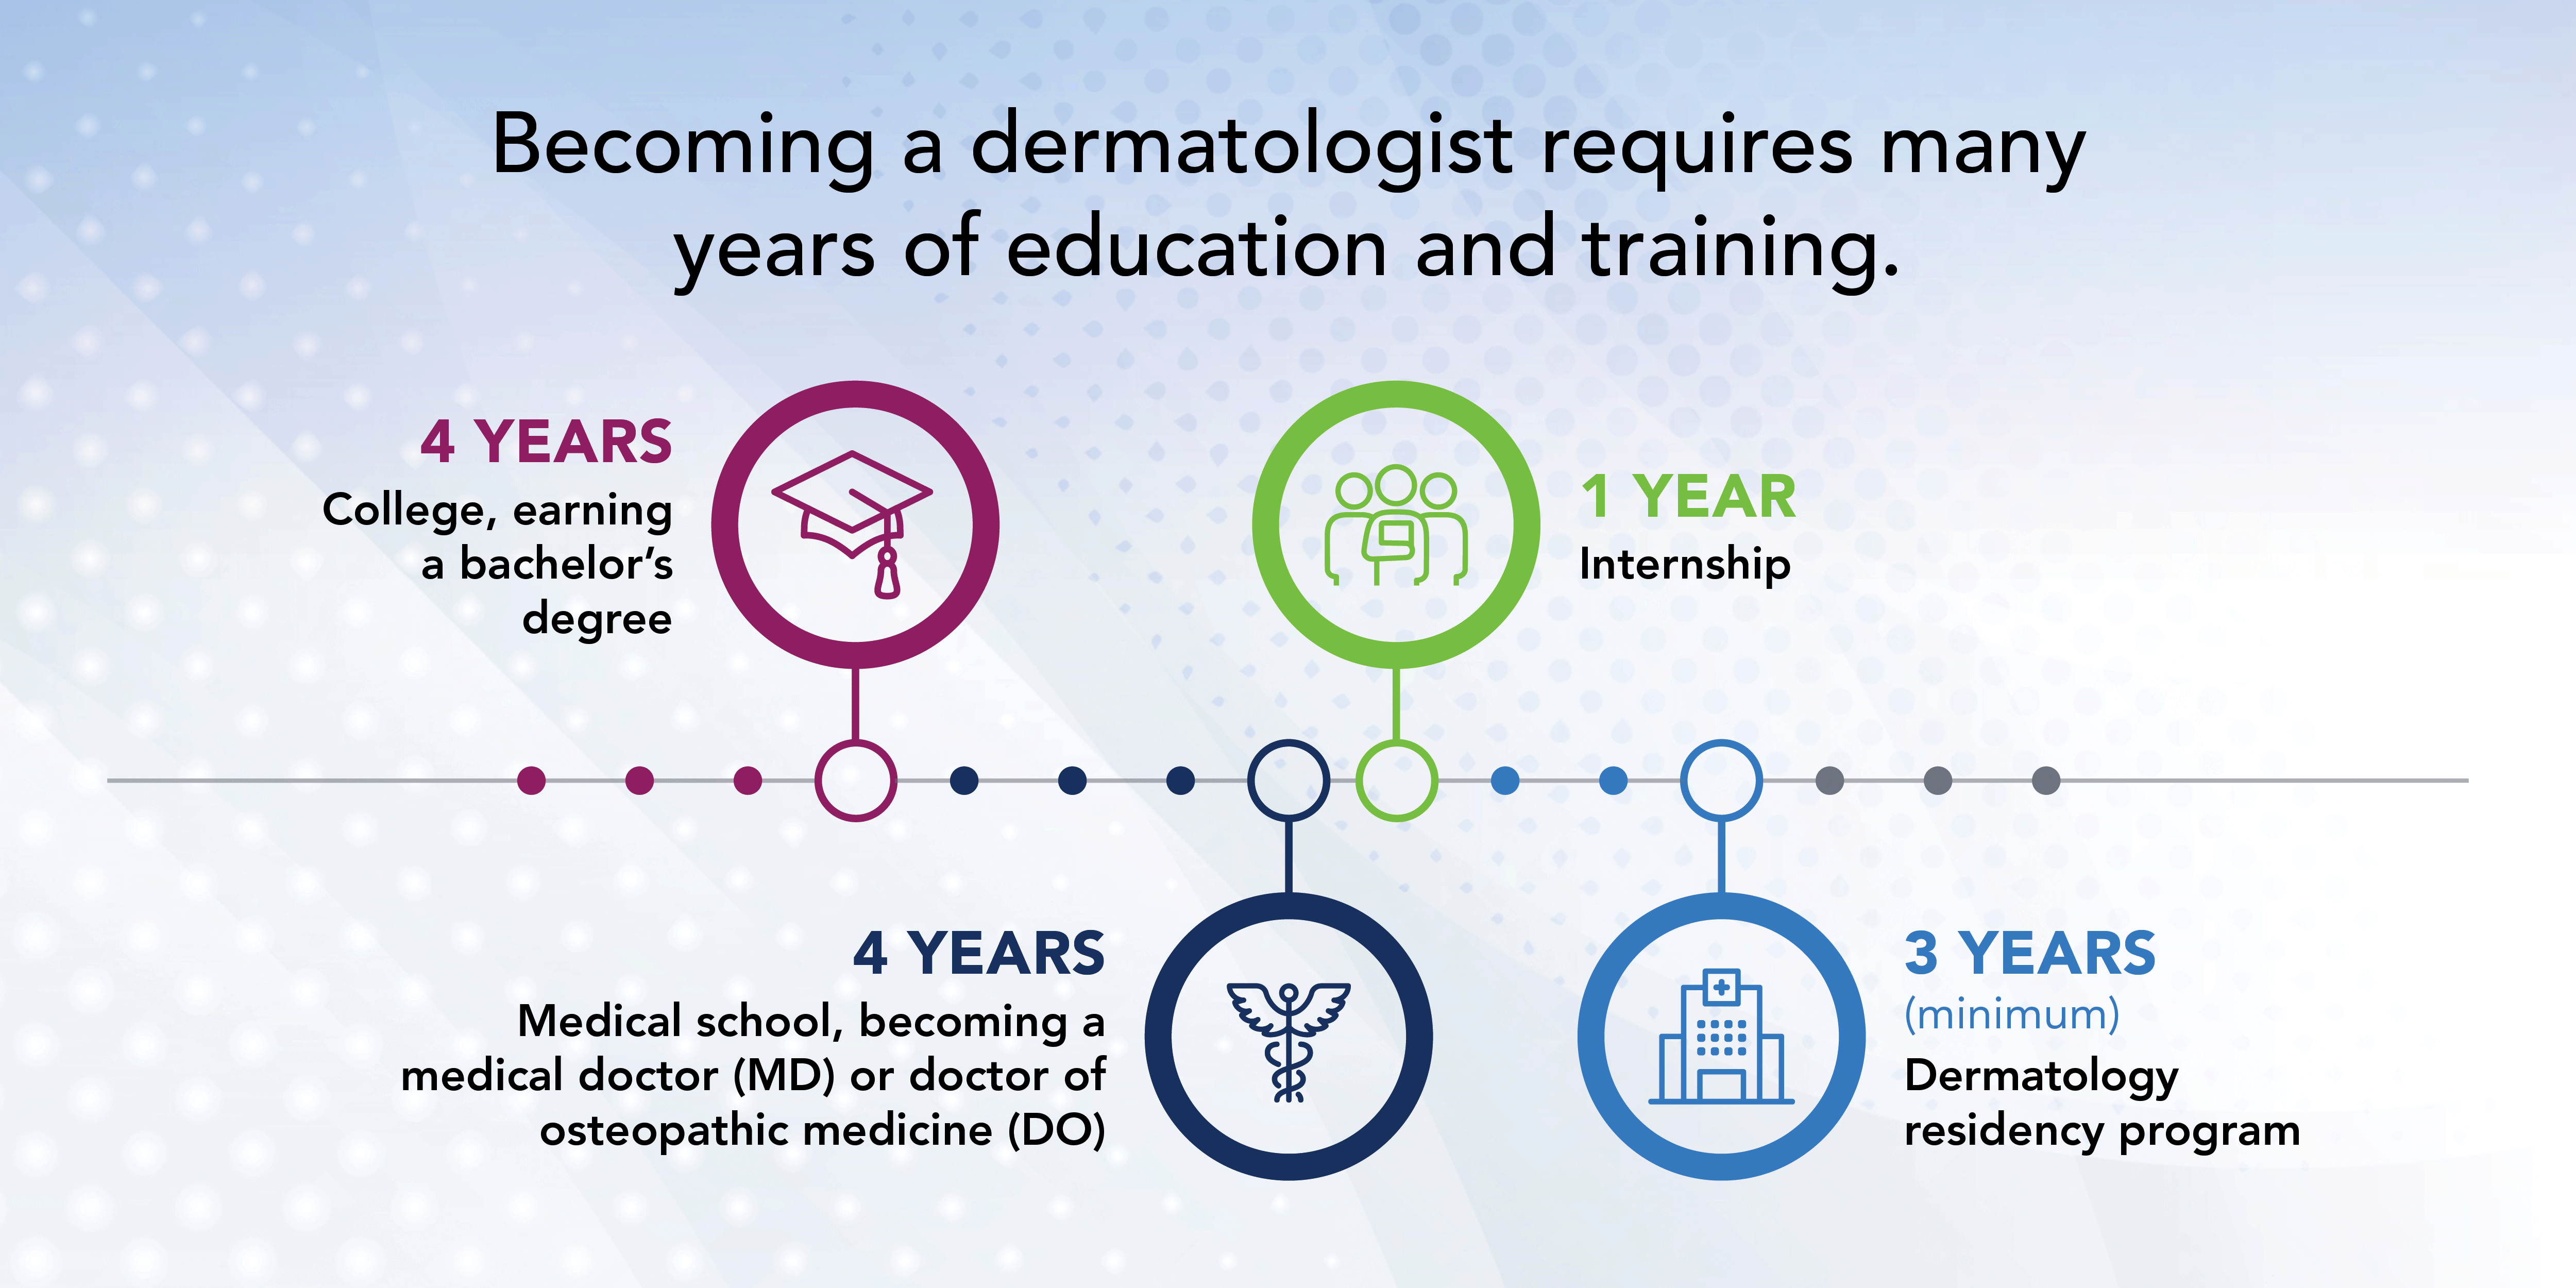 Dermatologist years of education and training infographic.